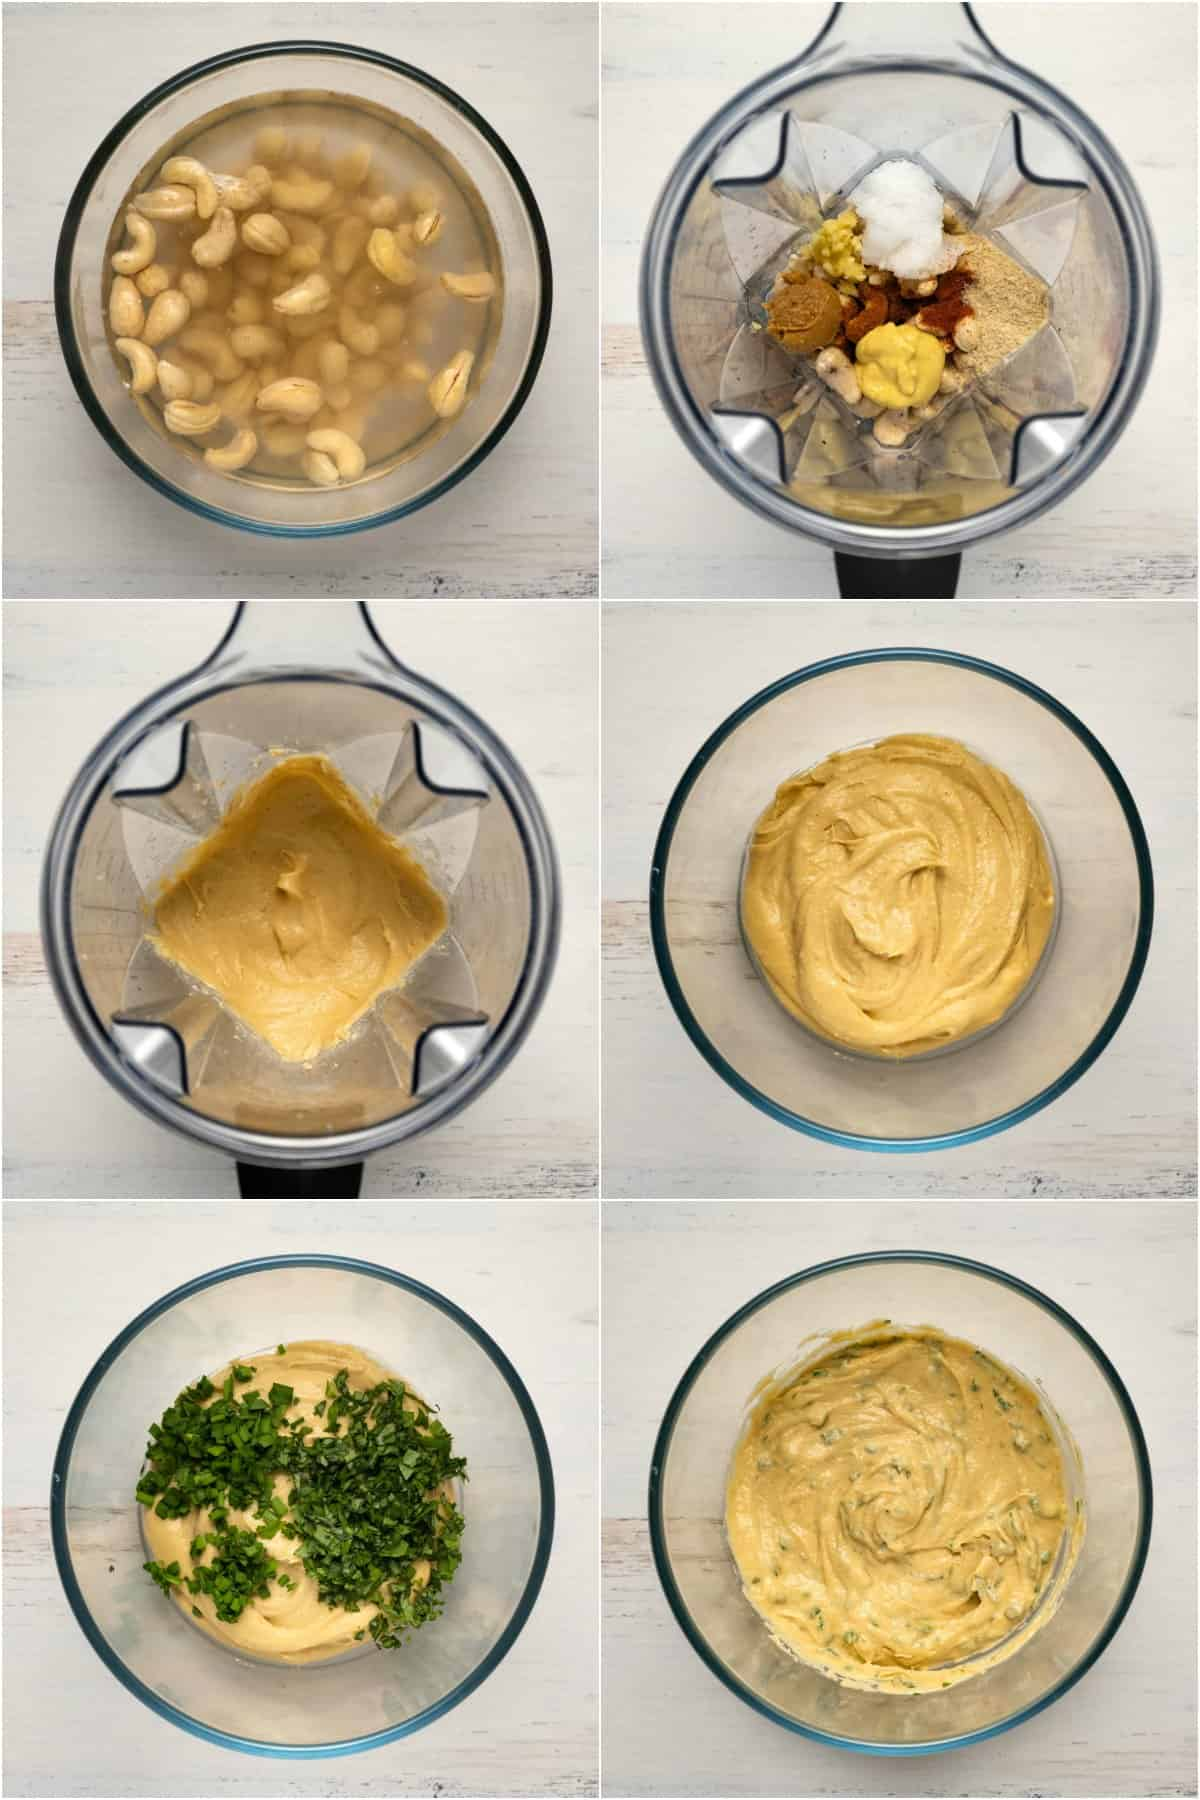 Step by step process photo collage of making a vegan cheese ball.